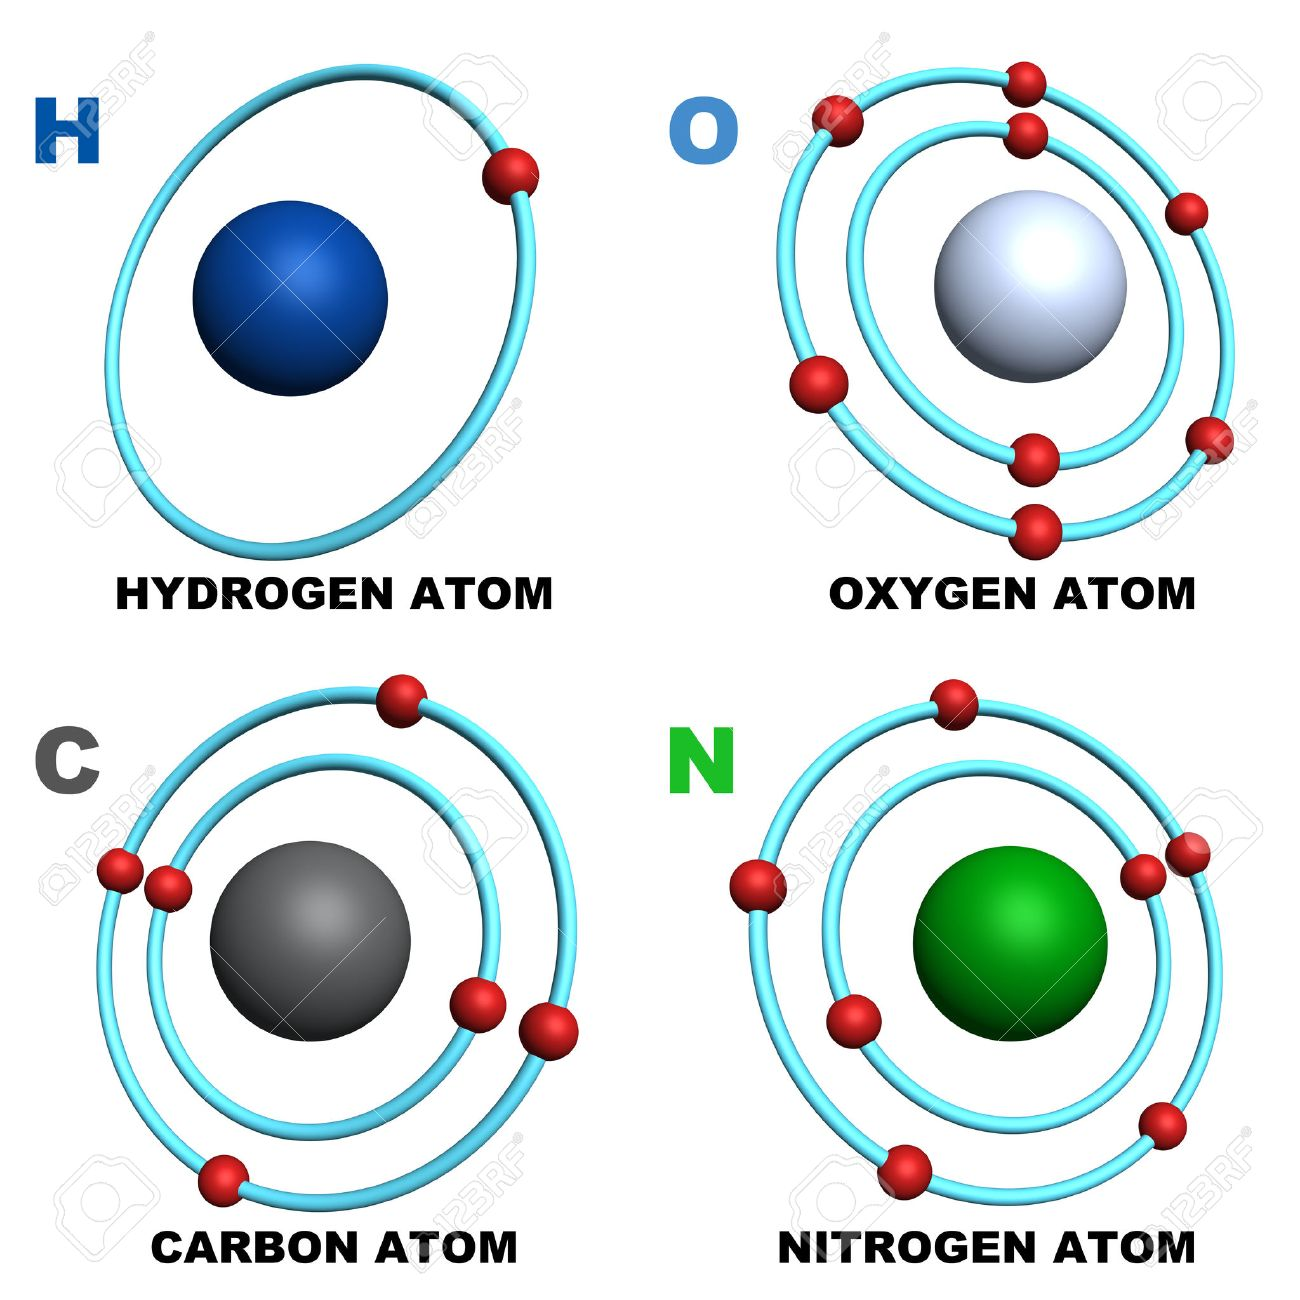 Hydrogen Oxygen Carbon Nitrogen Atom Stock Photo, Picture And ...